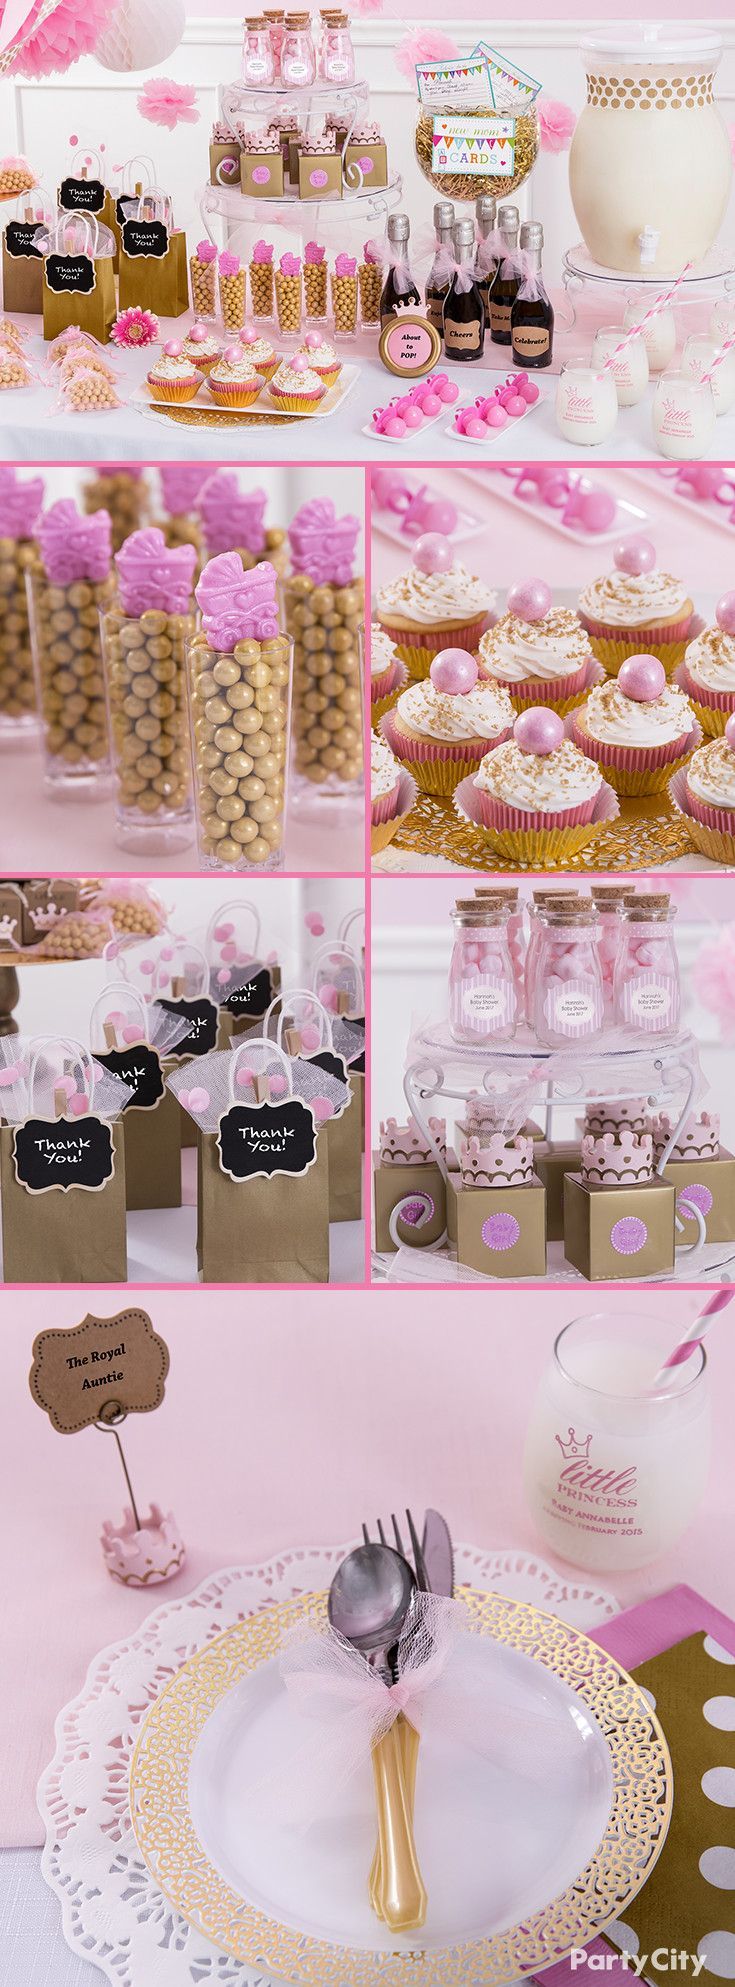 Pin On Baby Shower Ideas-6101